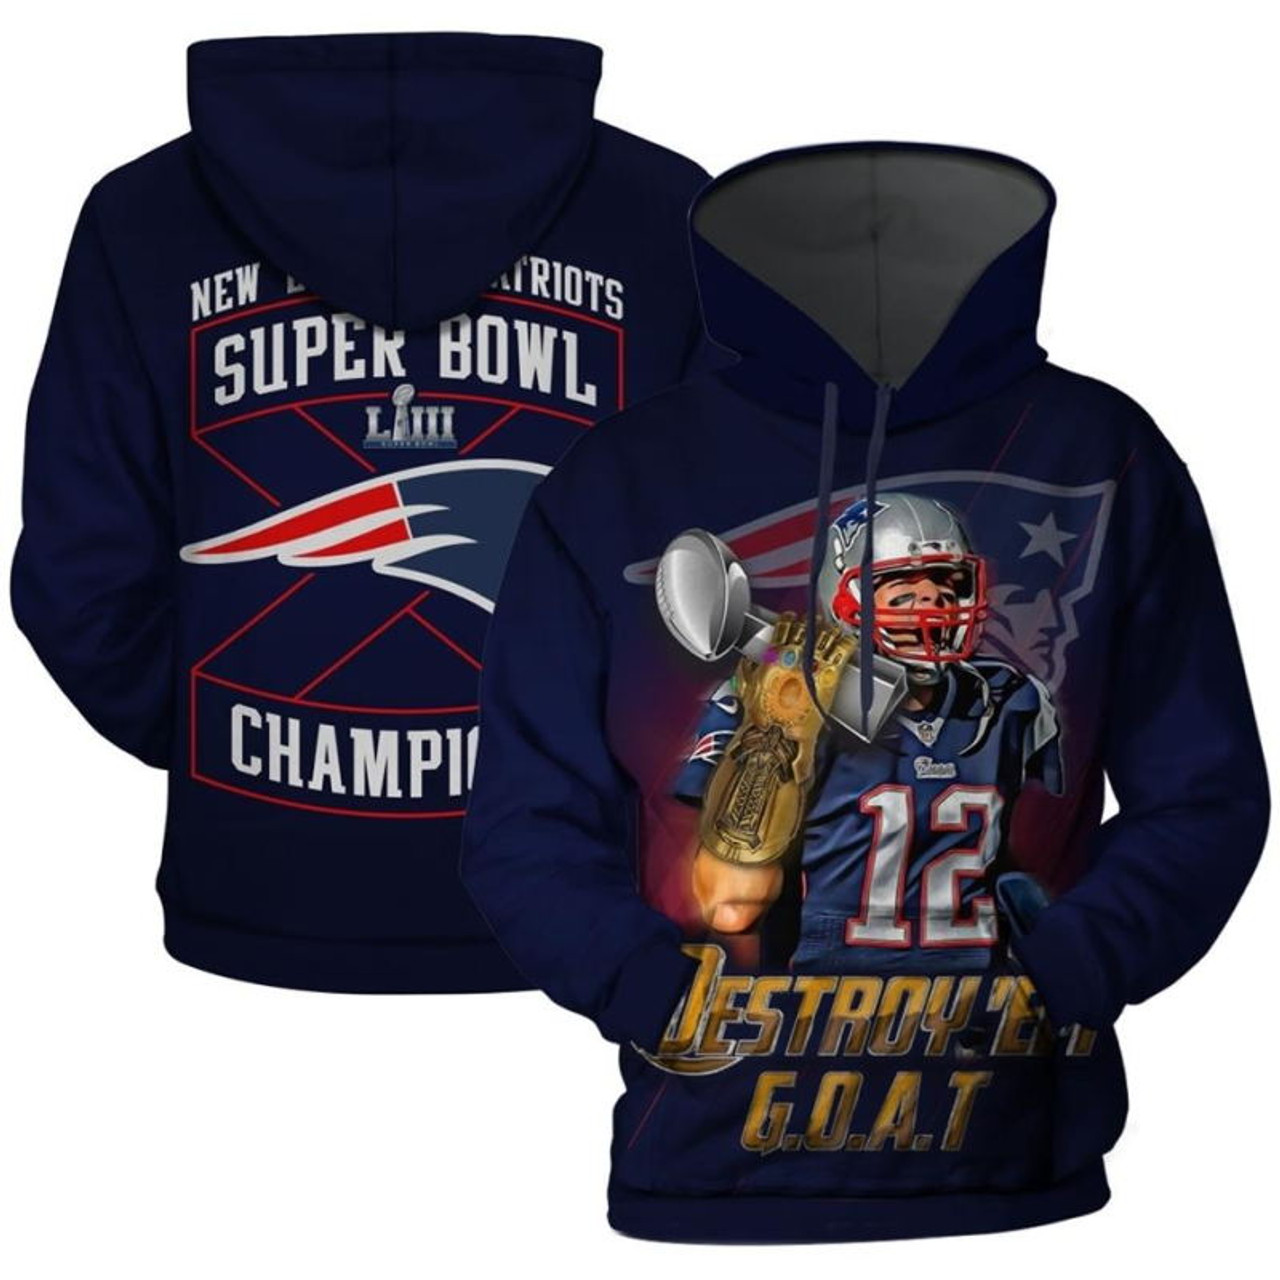 **(OFFICIALLY-LICENSED-N.F.L.NEW-ENGLAND-PATRIOTS-SUPER-BOWL-CHAMPIONS-LIII & TOM-BRADY-NO.12-DESTROY-'EM-G.O.A.T/NICE-CUSTOM-3D-GRAPHIC-DOUBLE-SIDED-PRINTED-OFFICIAL-PATRIOTS-DESIGNS-LOGOS,WARM-PREMIUM-PULLOVER-POCKET-HOODIES)**